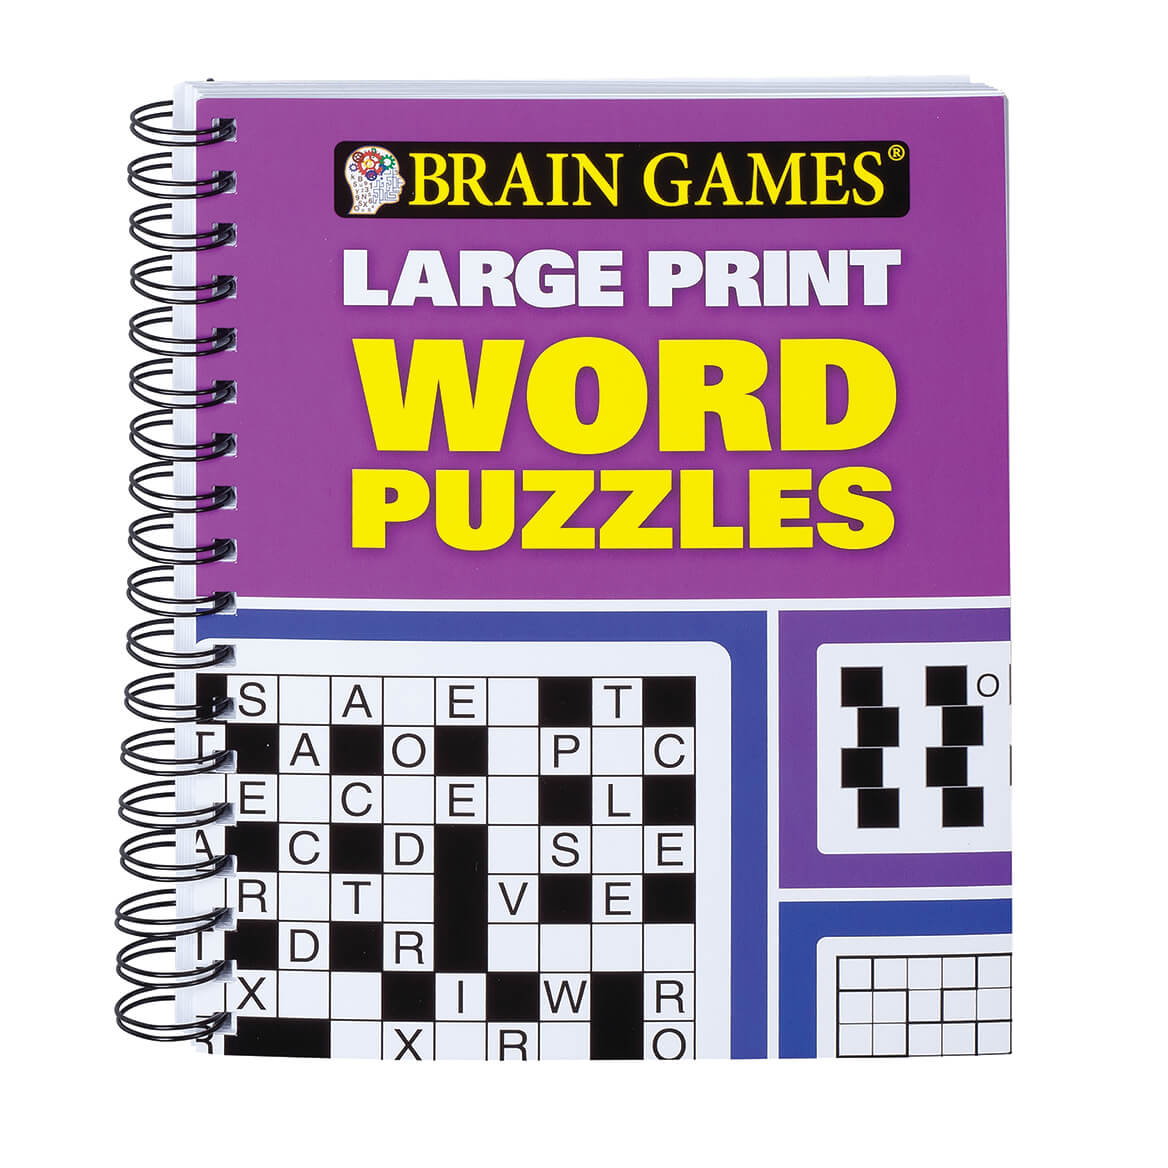 Brains Games Brain Games Large Print Word Puzzles Puzzle Book Miles